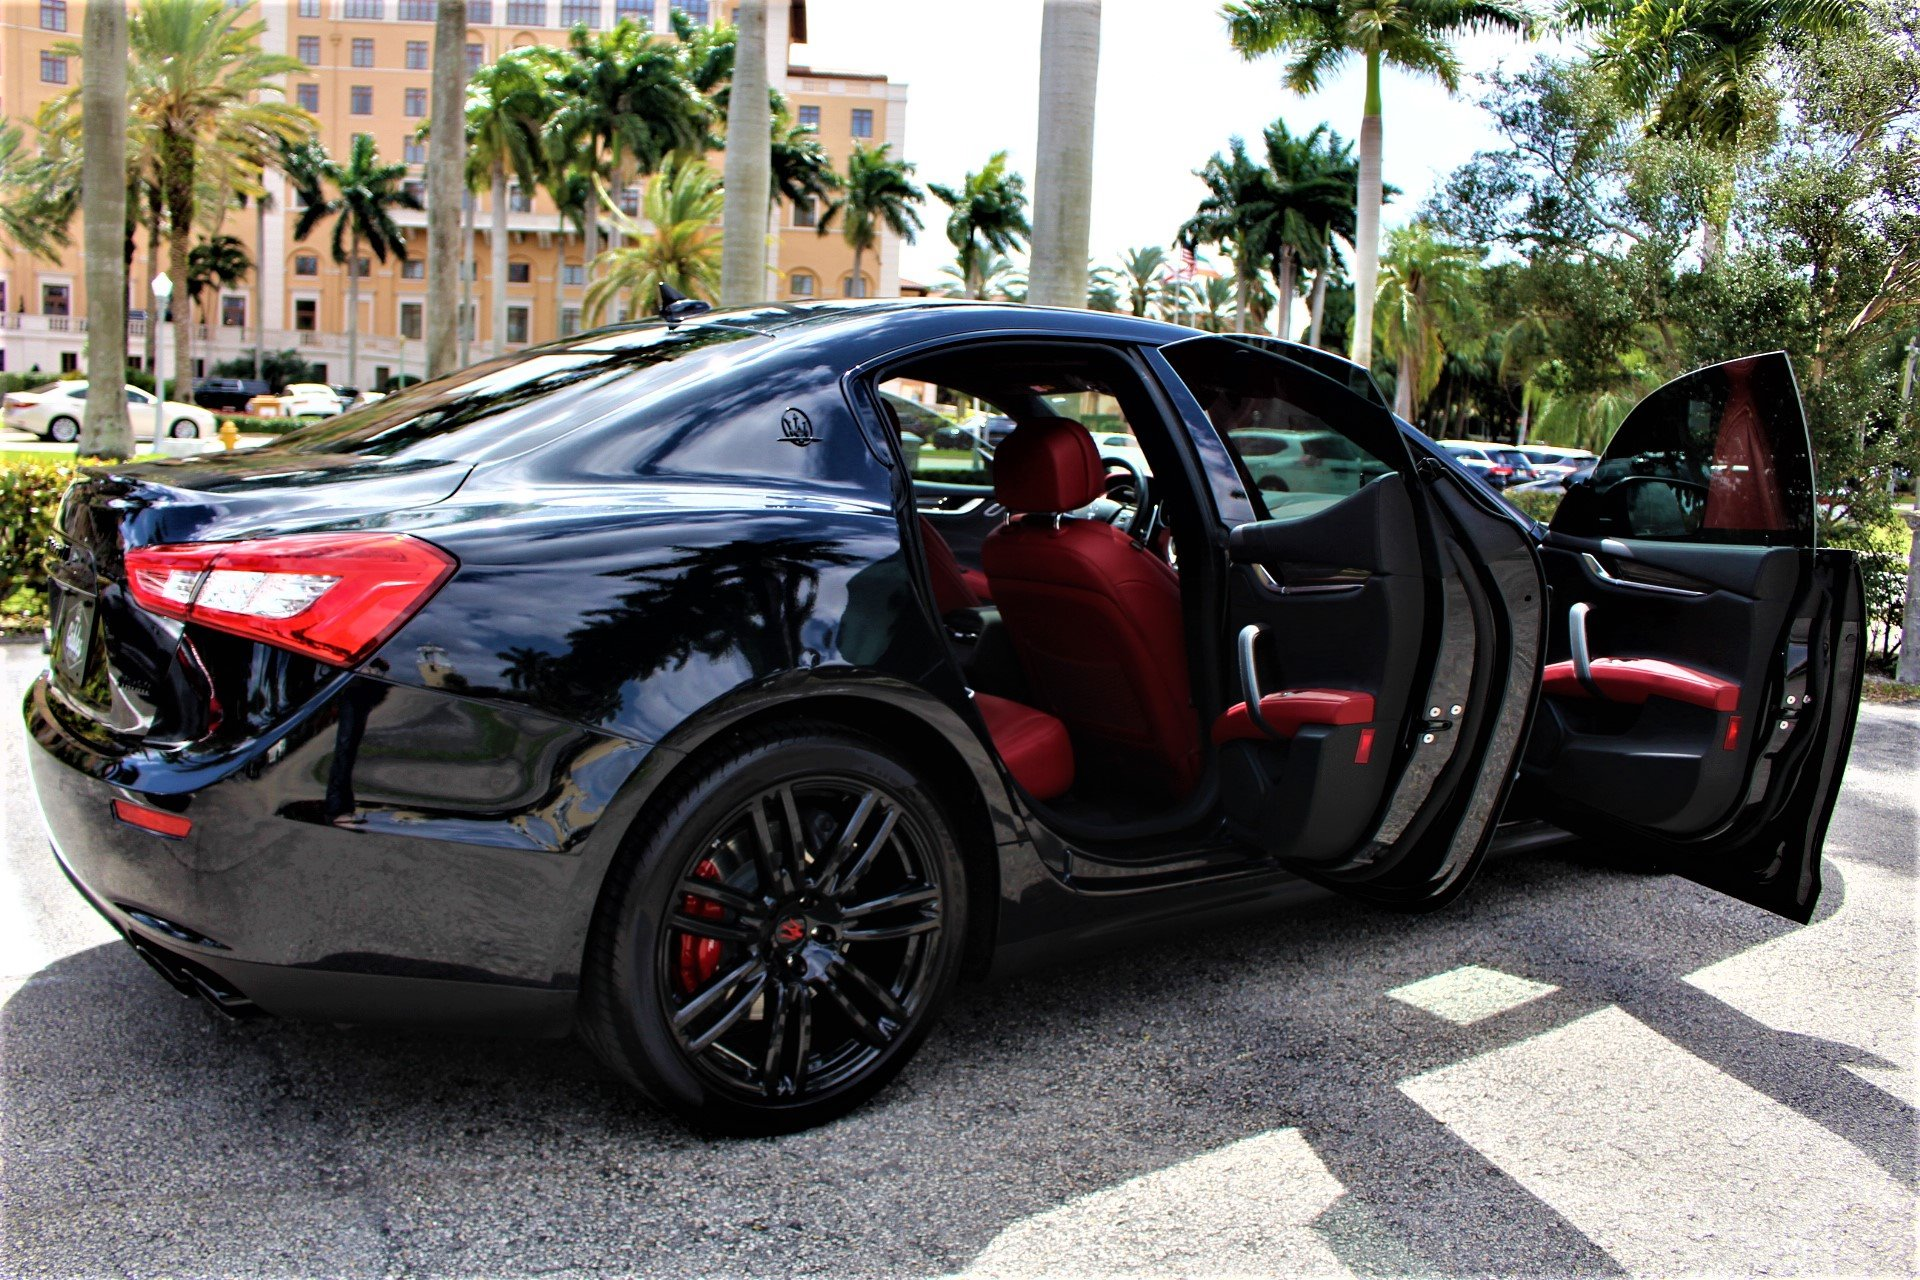 Used 2017 Maserati Ghibli S S for sale $43,850 at The Gables Sports Cars in Miami FL 33146 1